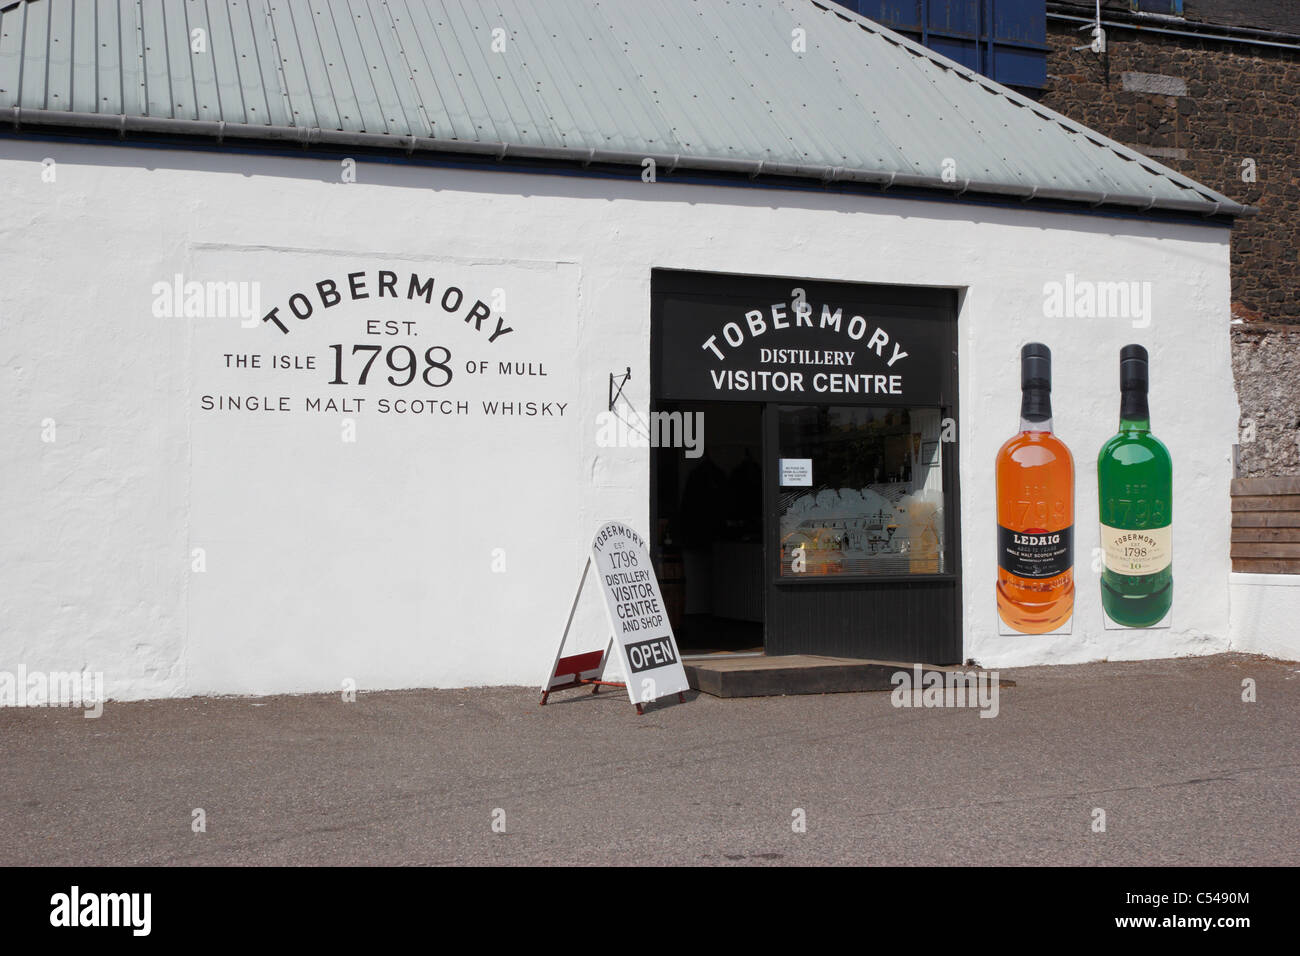 The Tobermory distillery visitor centre on the Isle of Mull Stock Photo